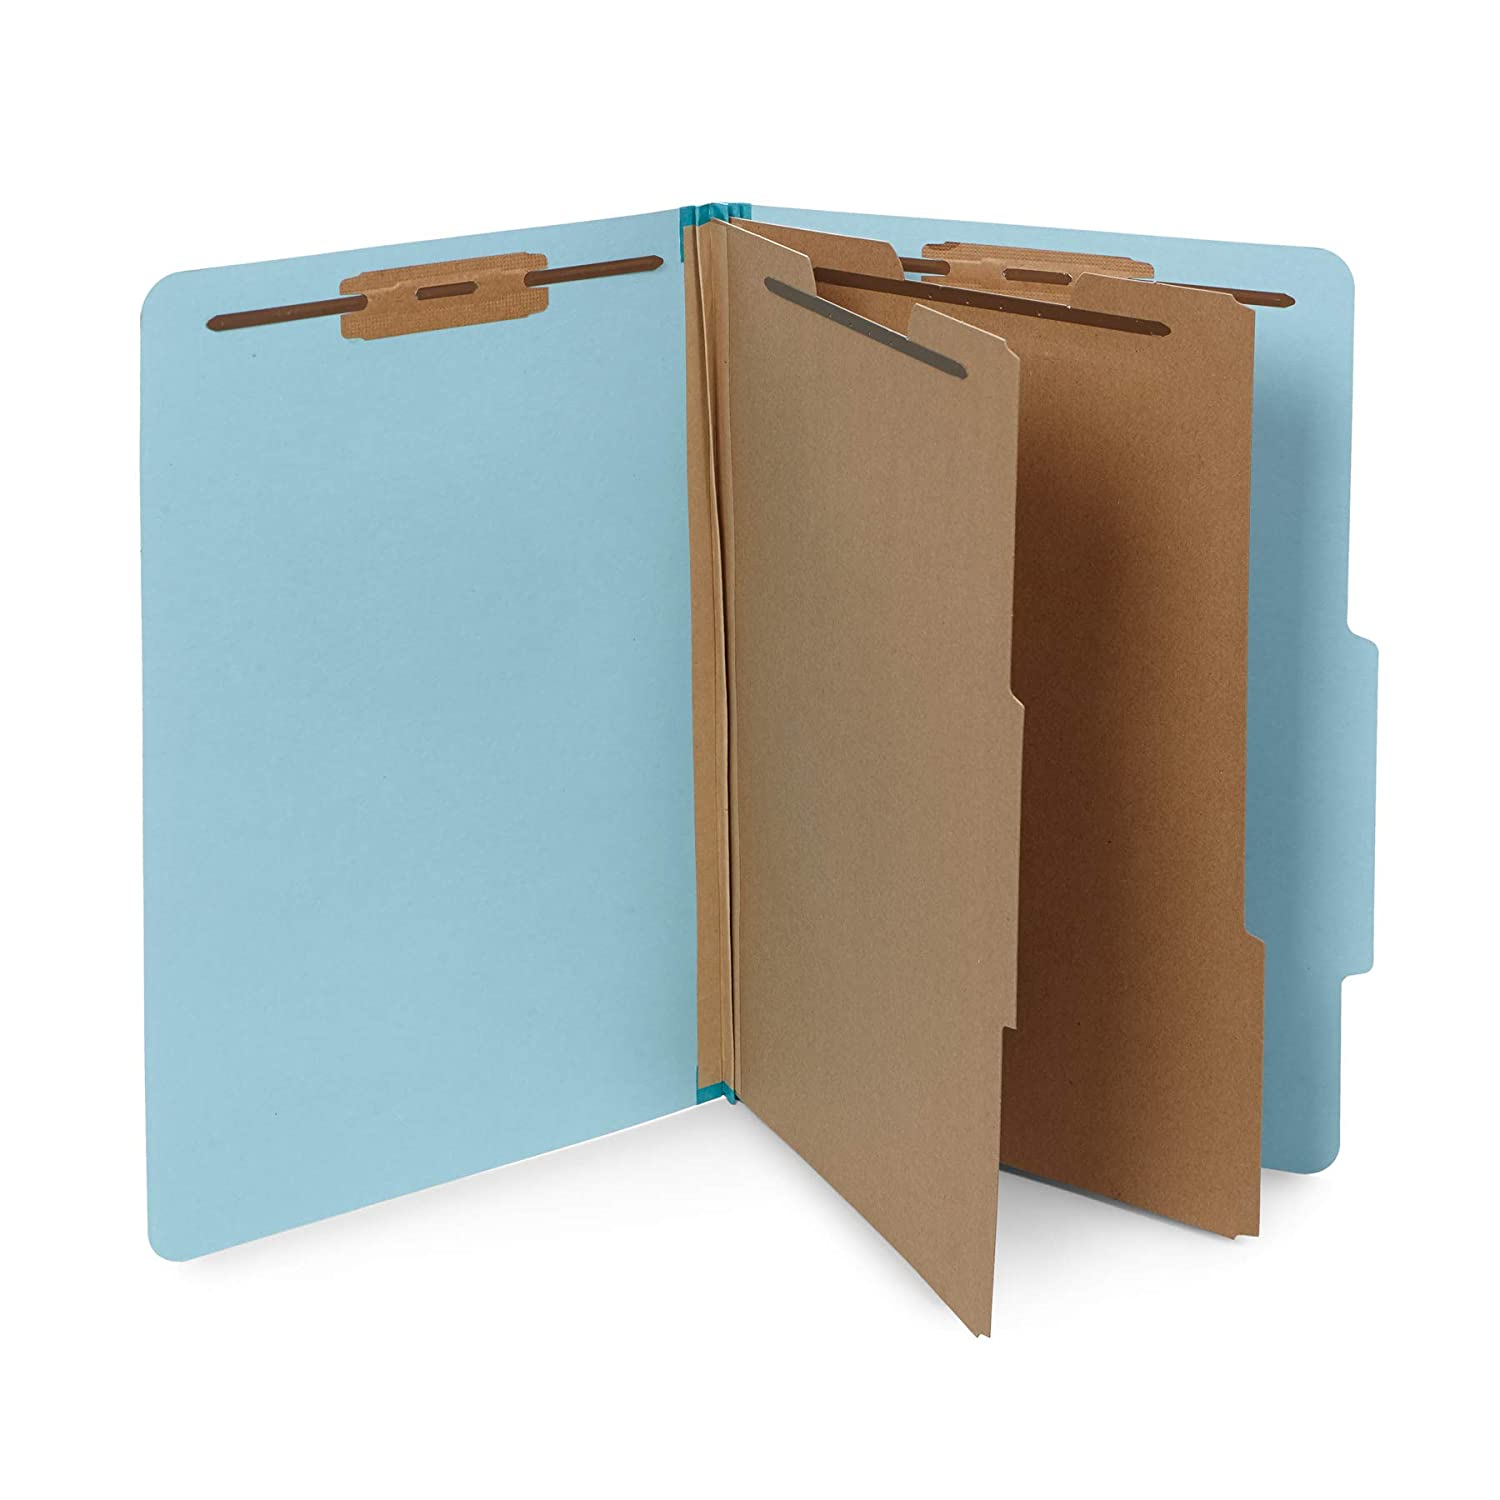 10 Blue Legal Size Classification Folders - 2 Divider 2 Inch Tyvek expansions - Durable 2 Prongs Designed to Organize Standard Law Client Files, Office Reports - Legal Size, 8 3/4 x 14 3/4, 10 Folders 717vub2BXsjL